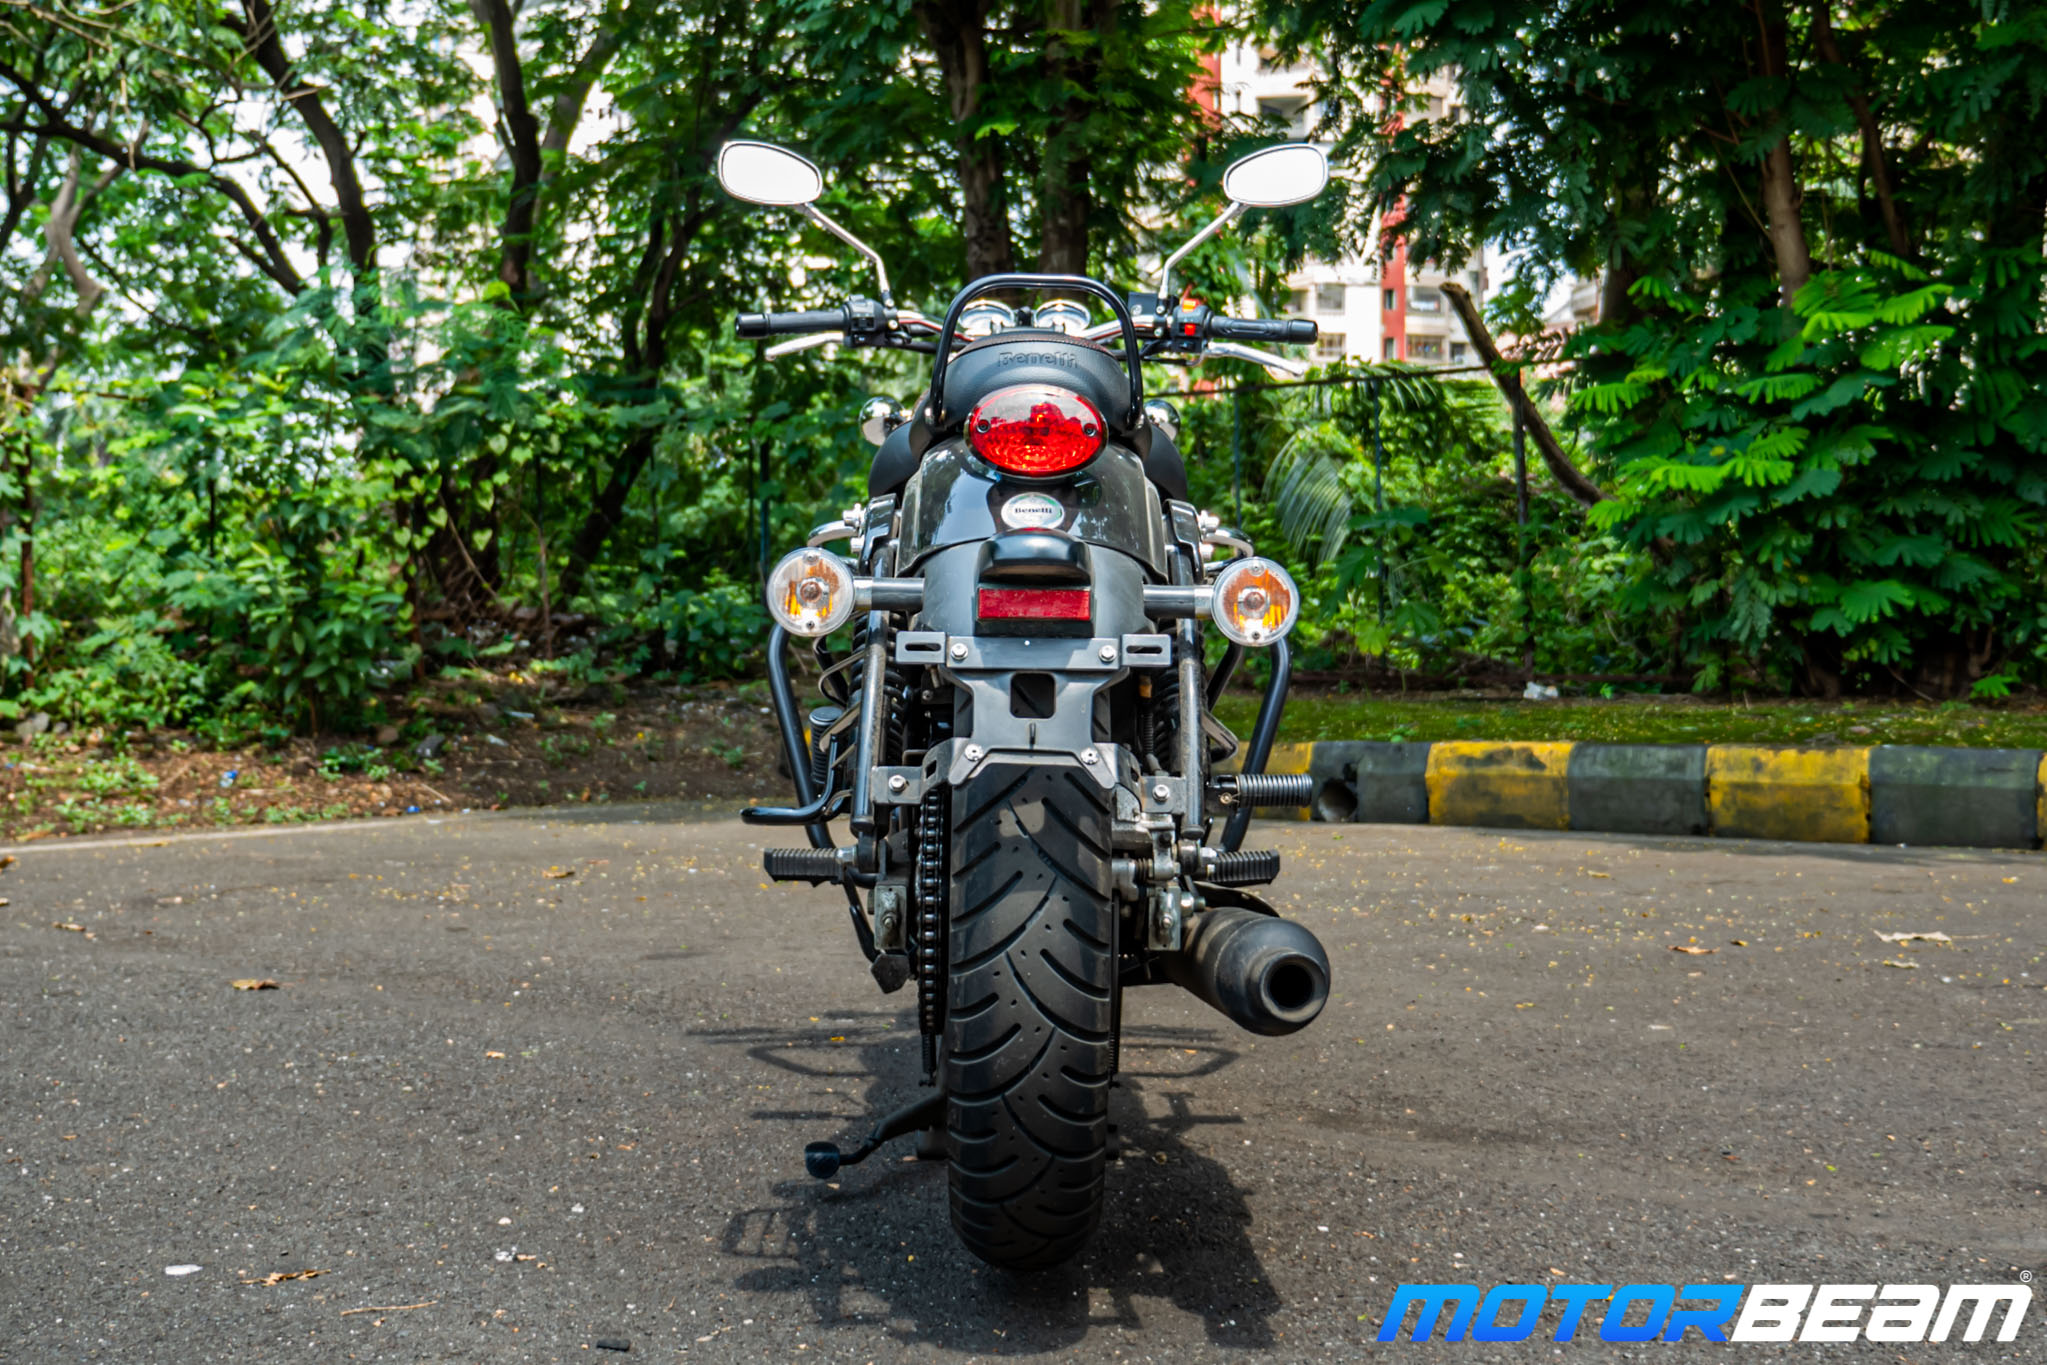 2020 Benelli Imperiale 400 Review 16